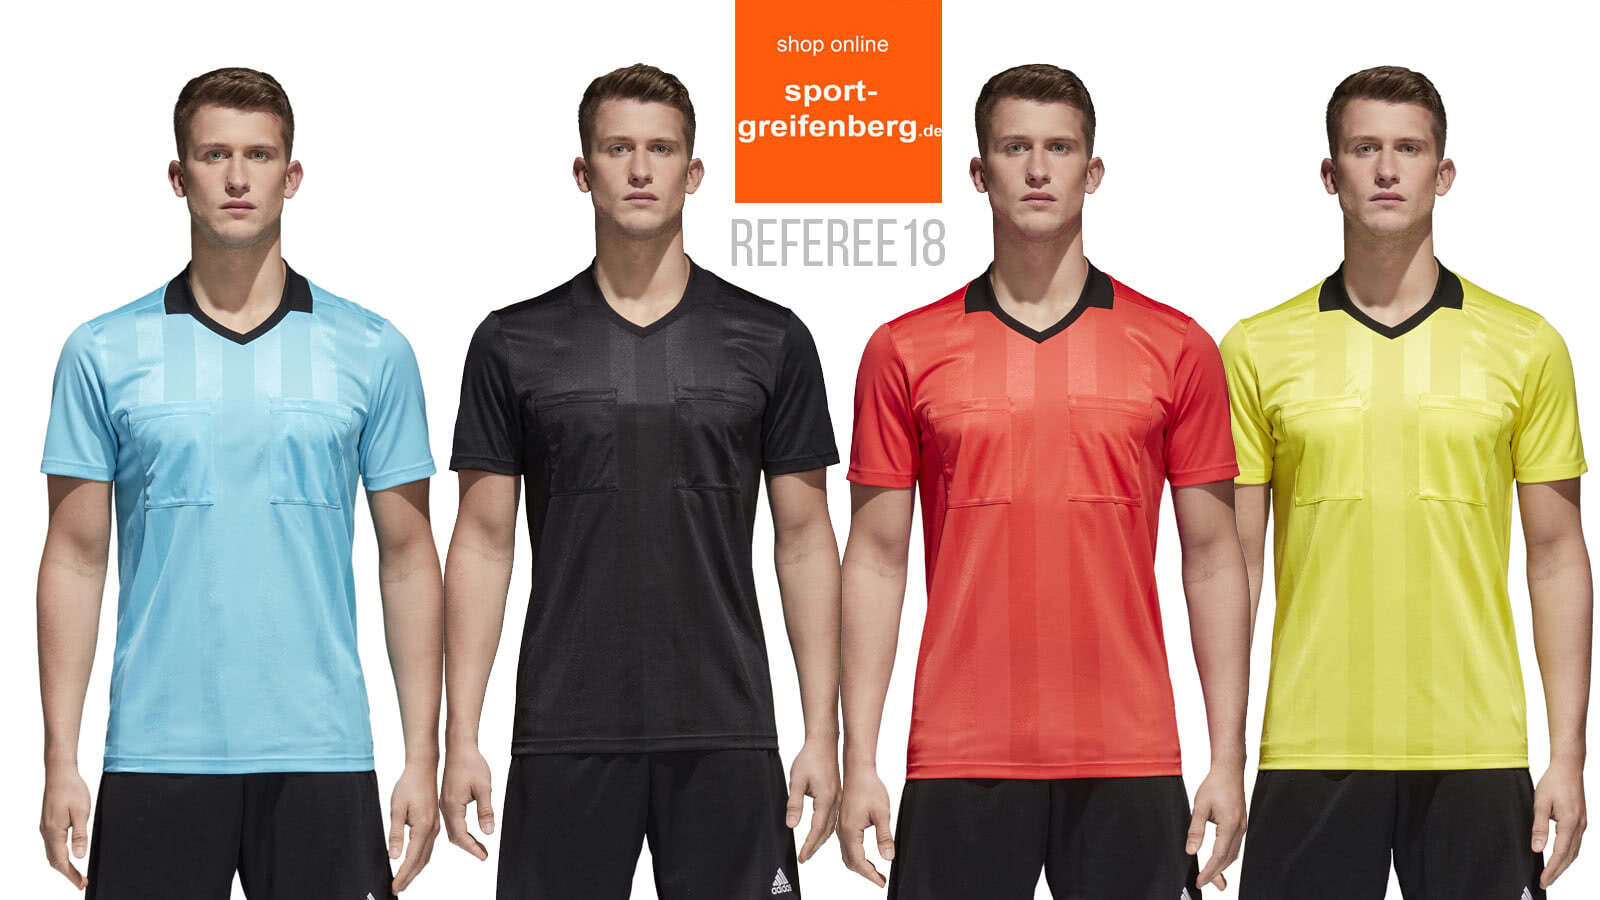 adidas Referee Damen 18 Shop | Allzweck Sportartikel